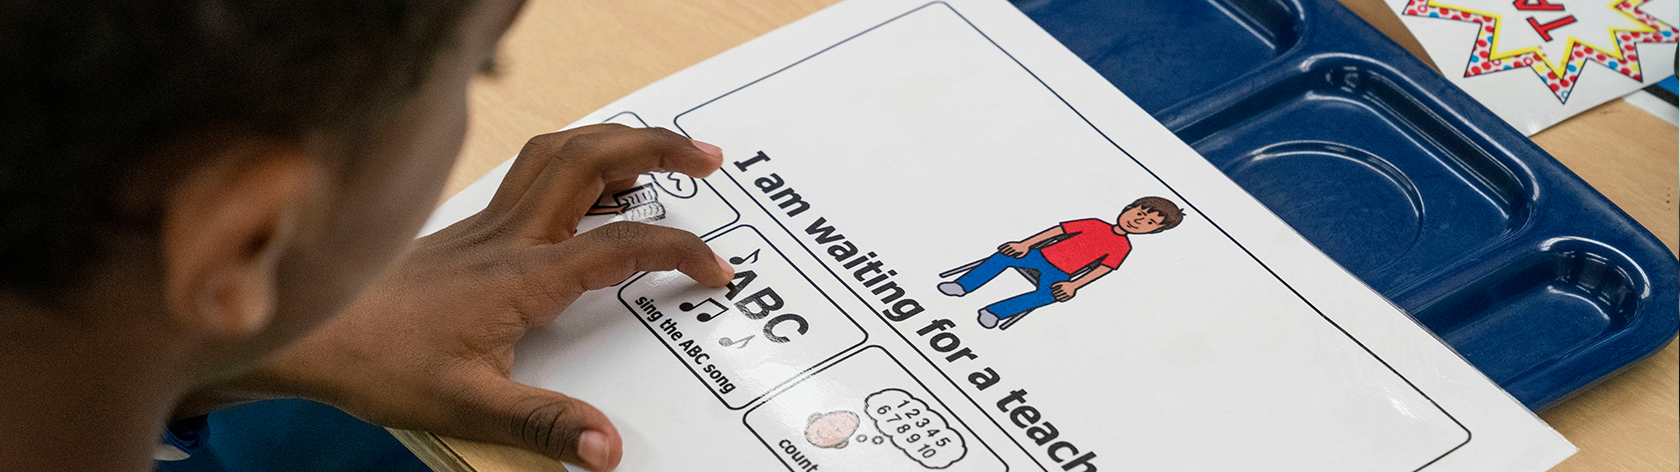 Picture of a child looking at a visual chart providing choices of what he can do while he waits for a teacher.